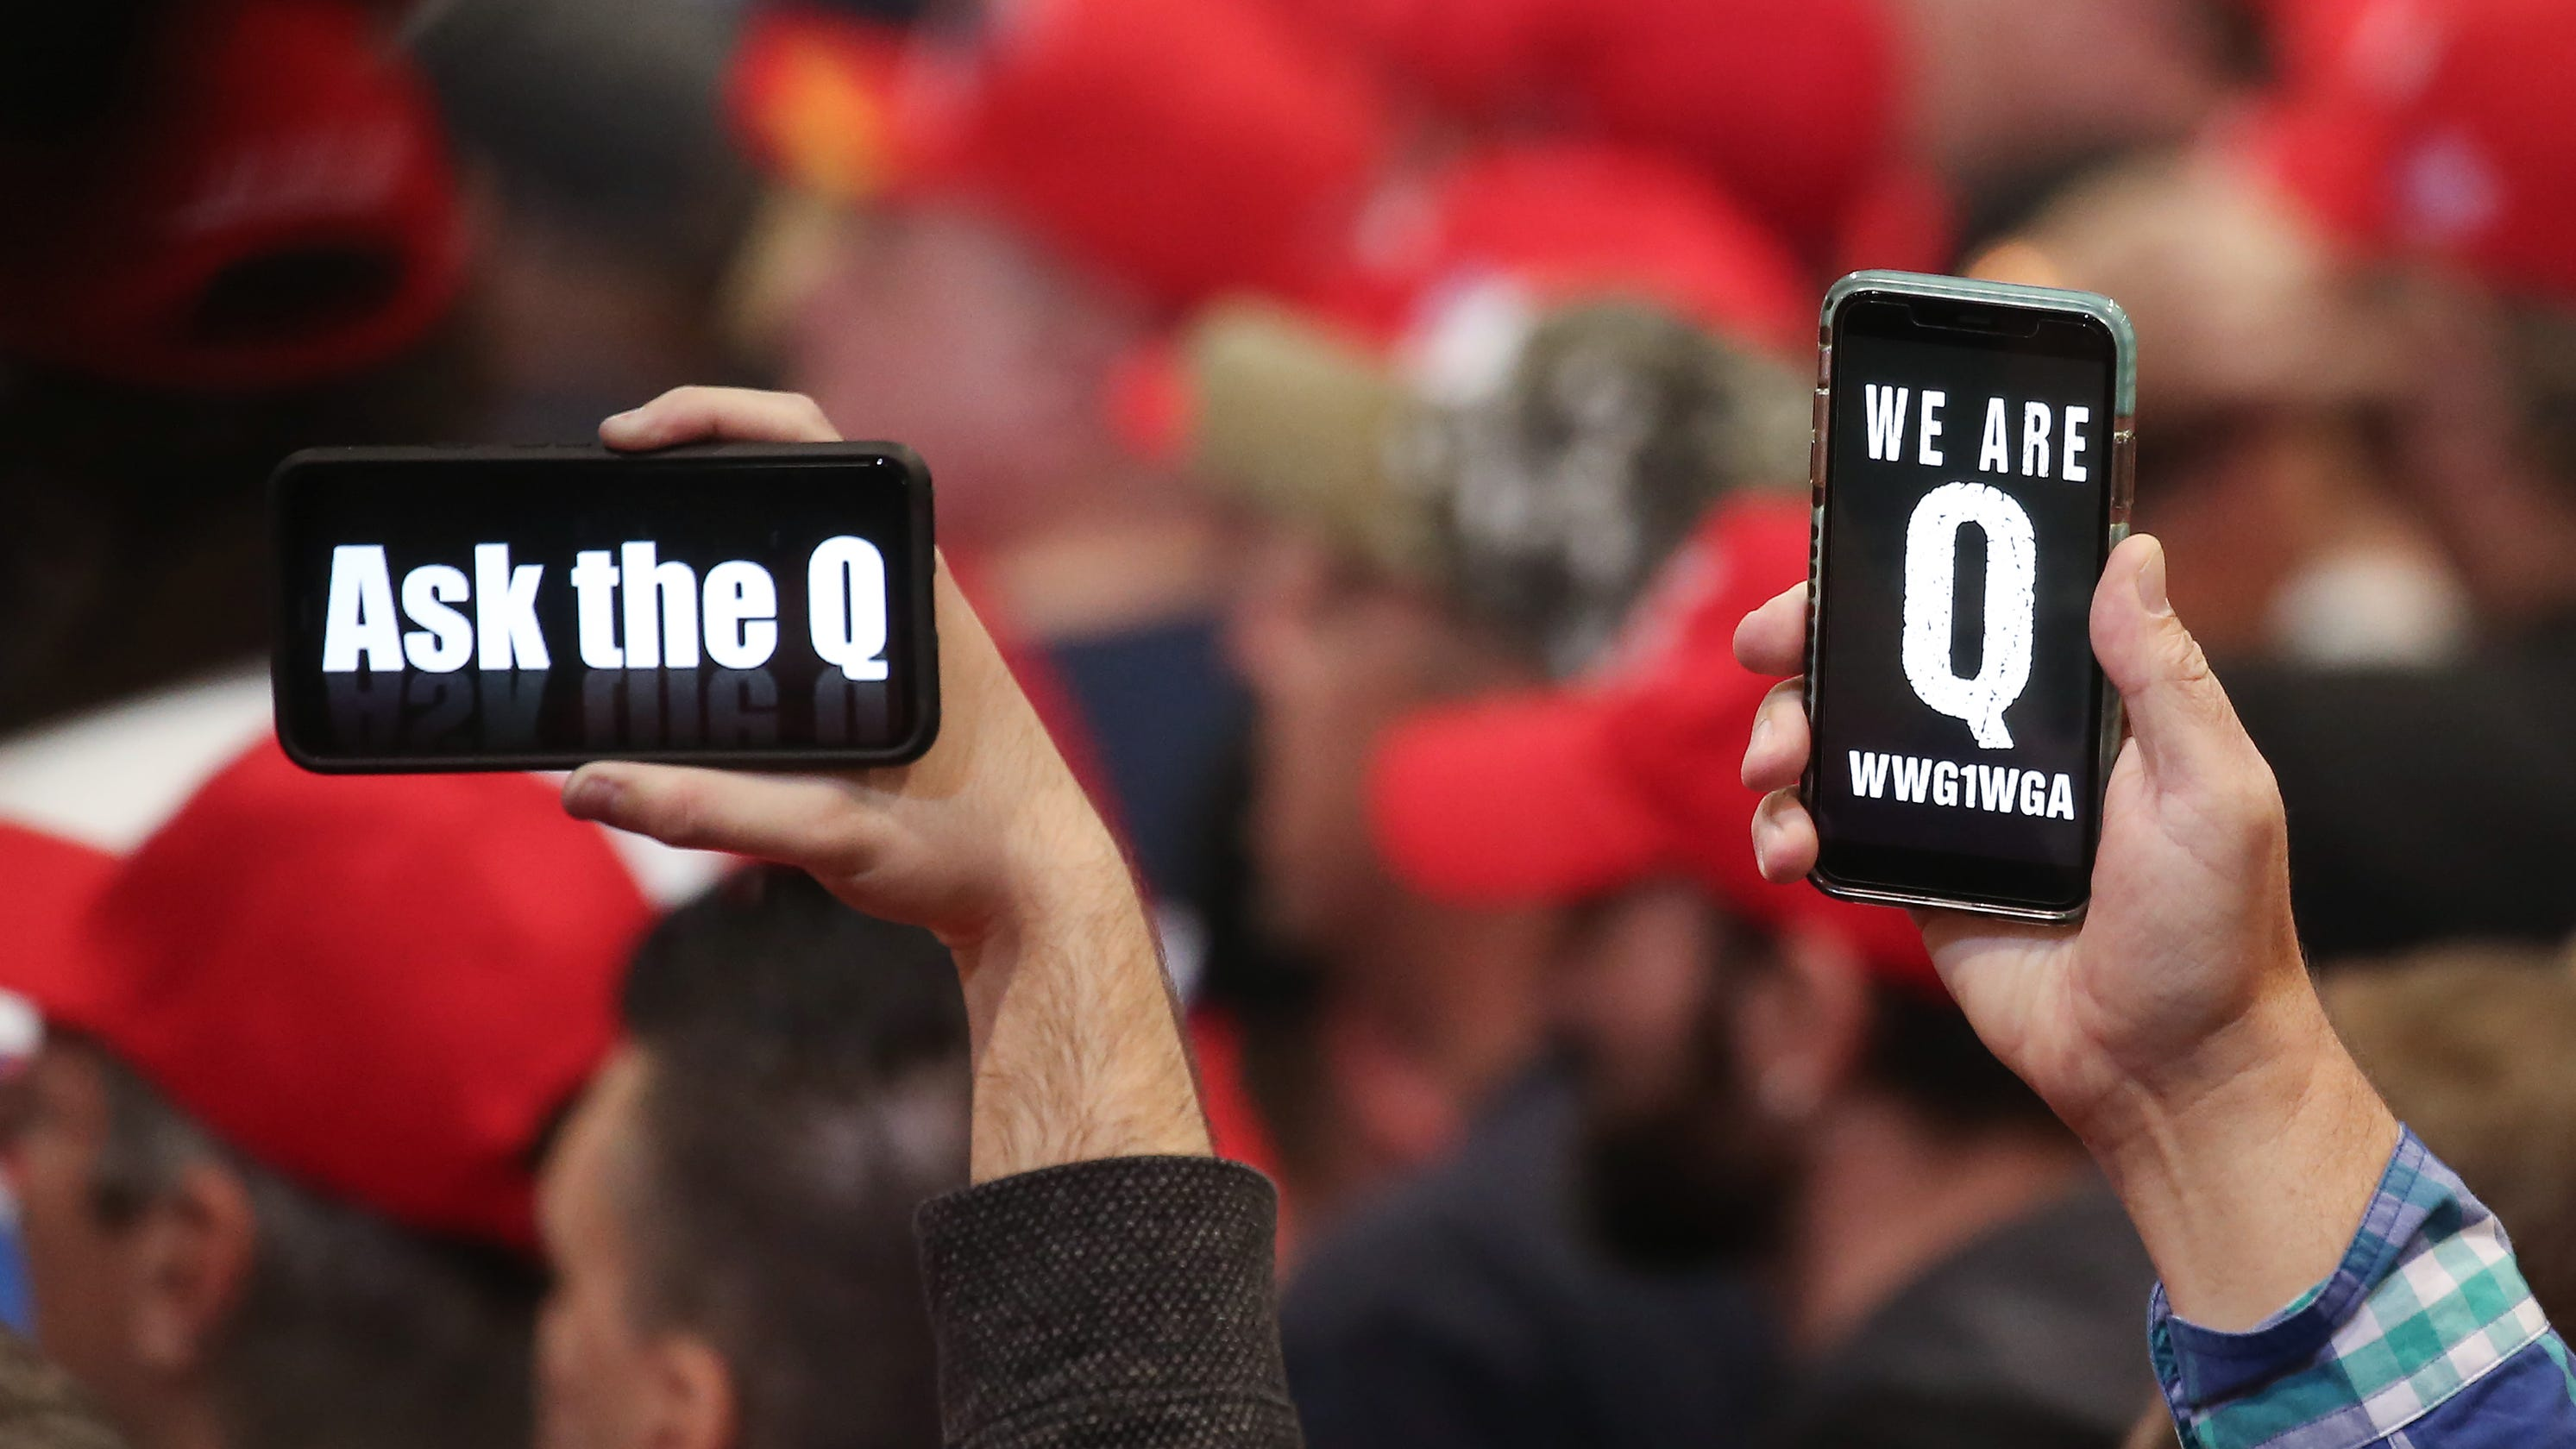 Debunked QAnon conspiracy theories are seeping into mainstream social media. Don't be fooled.